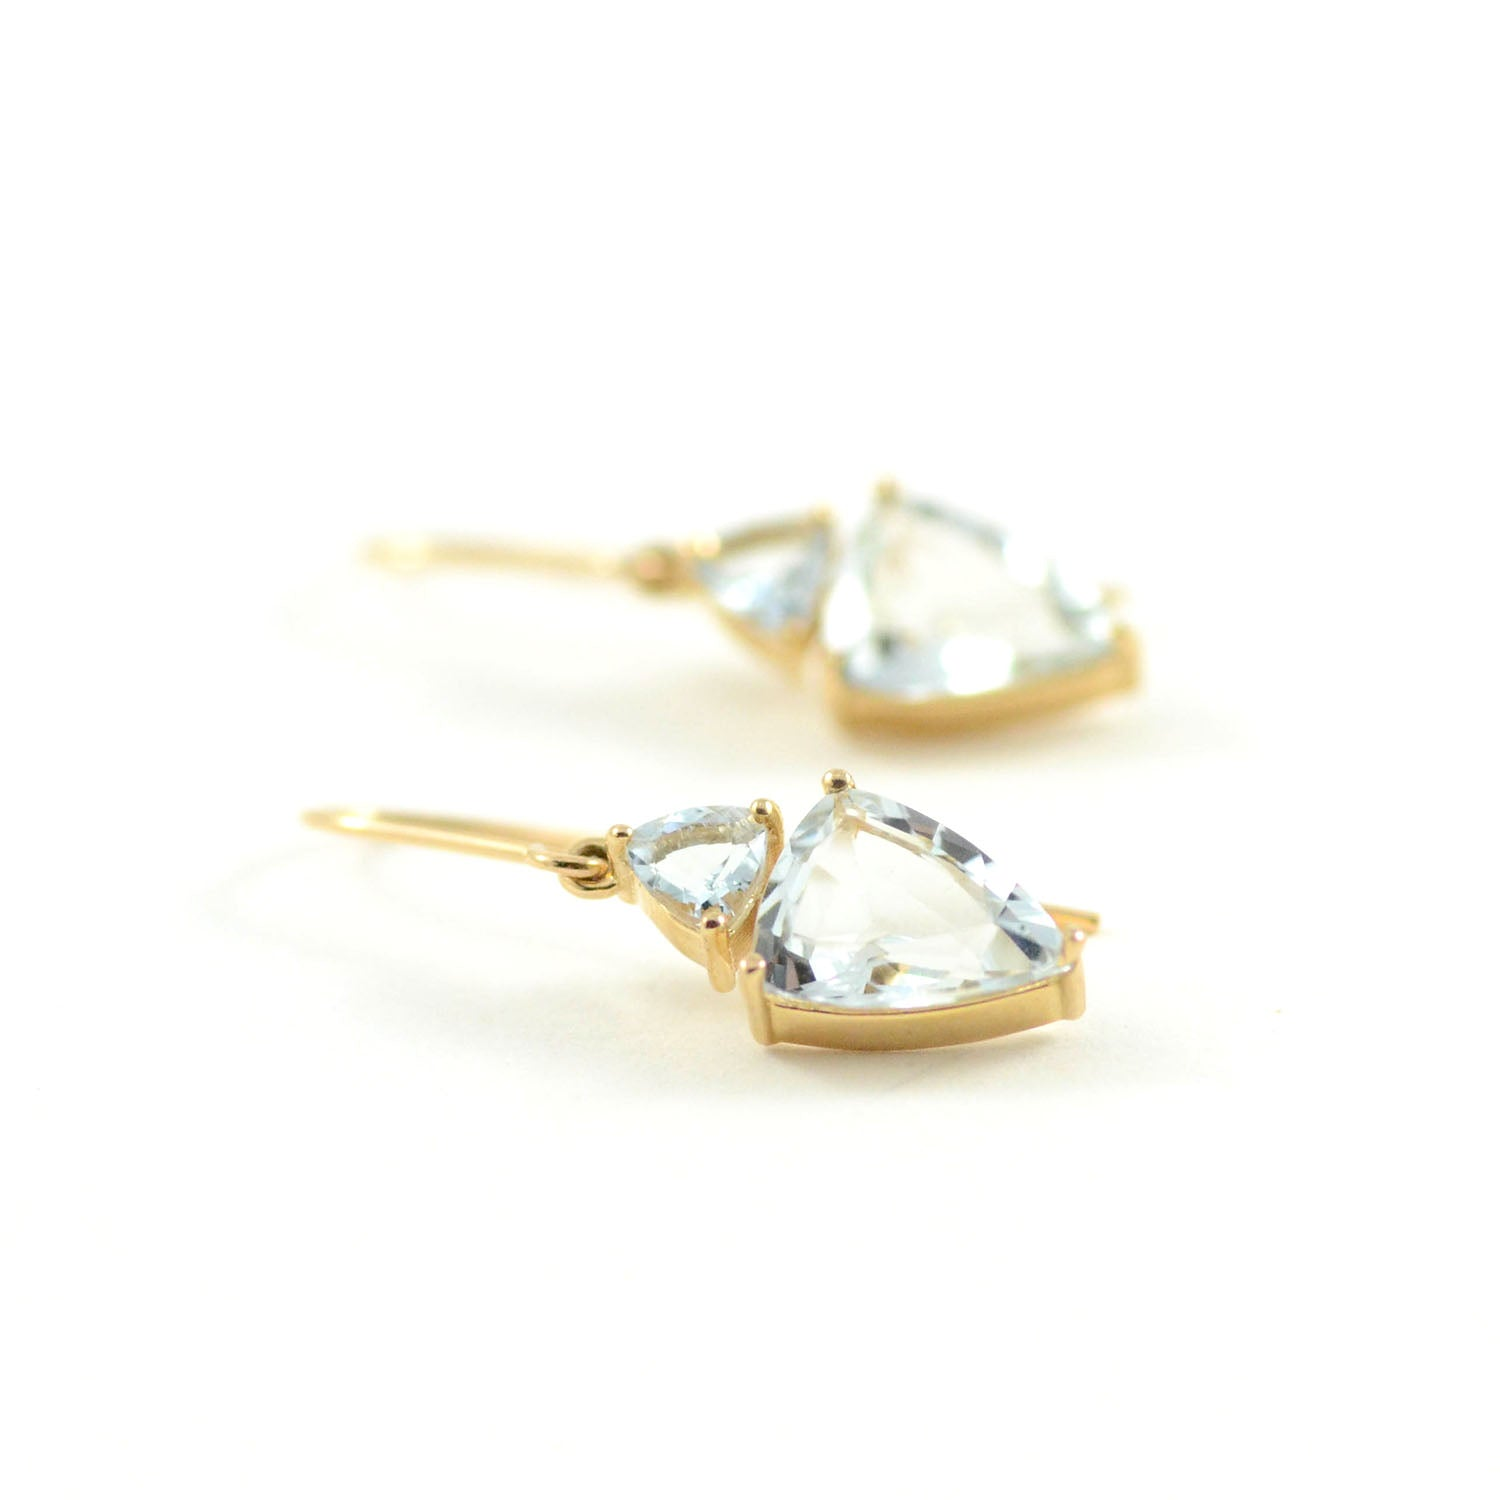 Aqua Faceted Trillion Earrings